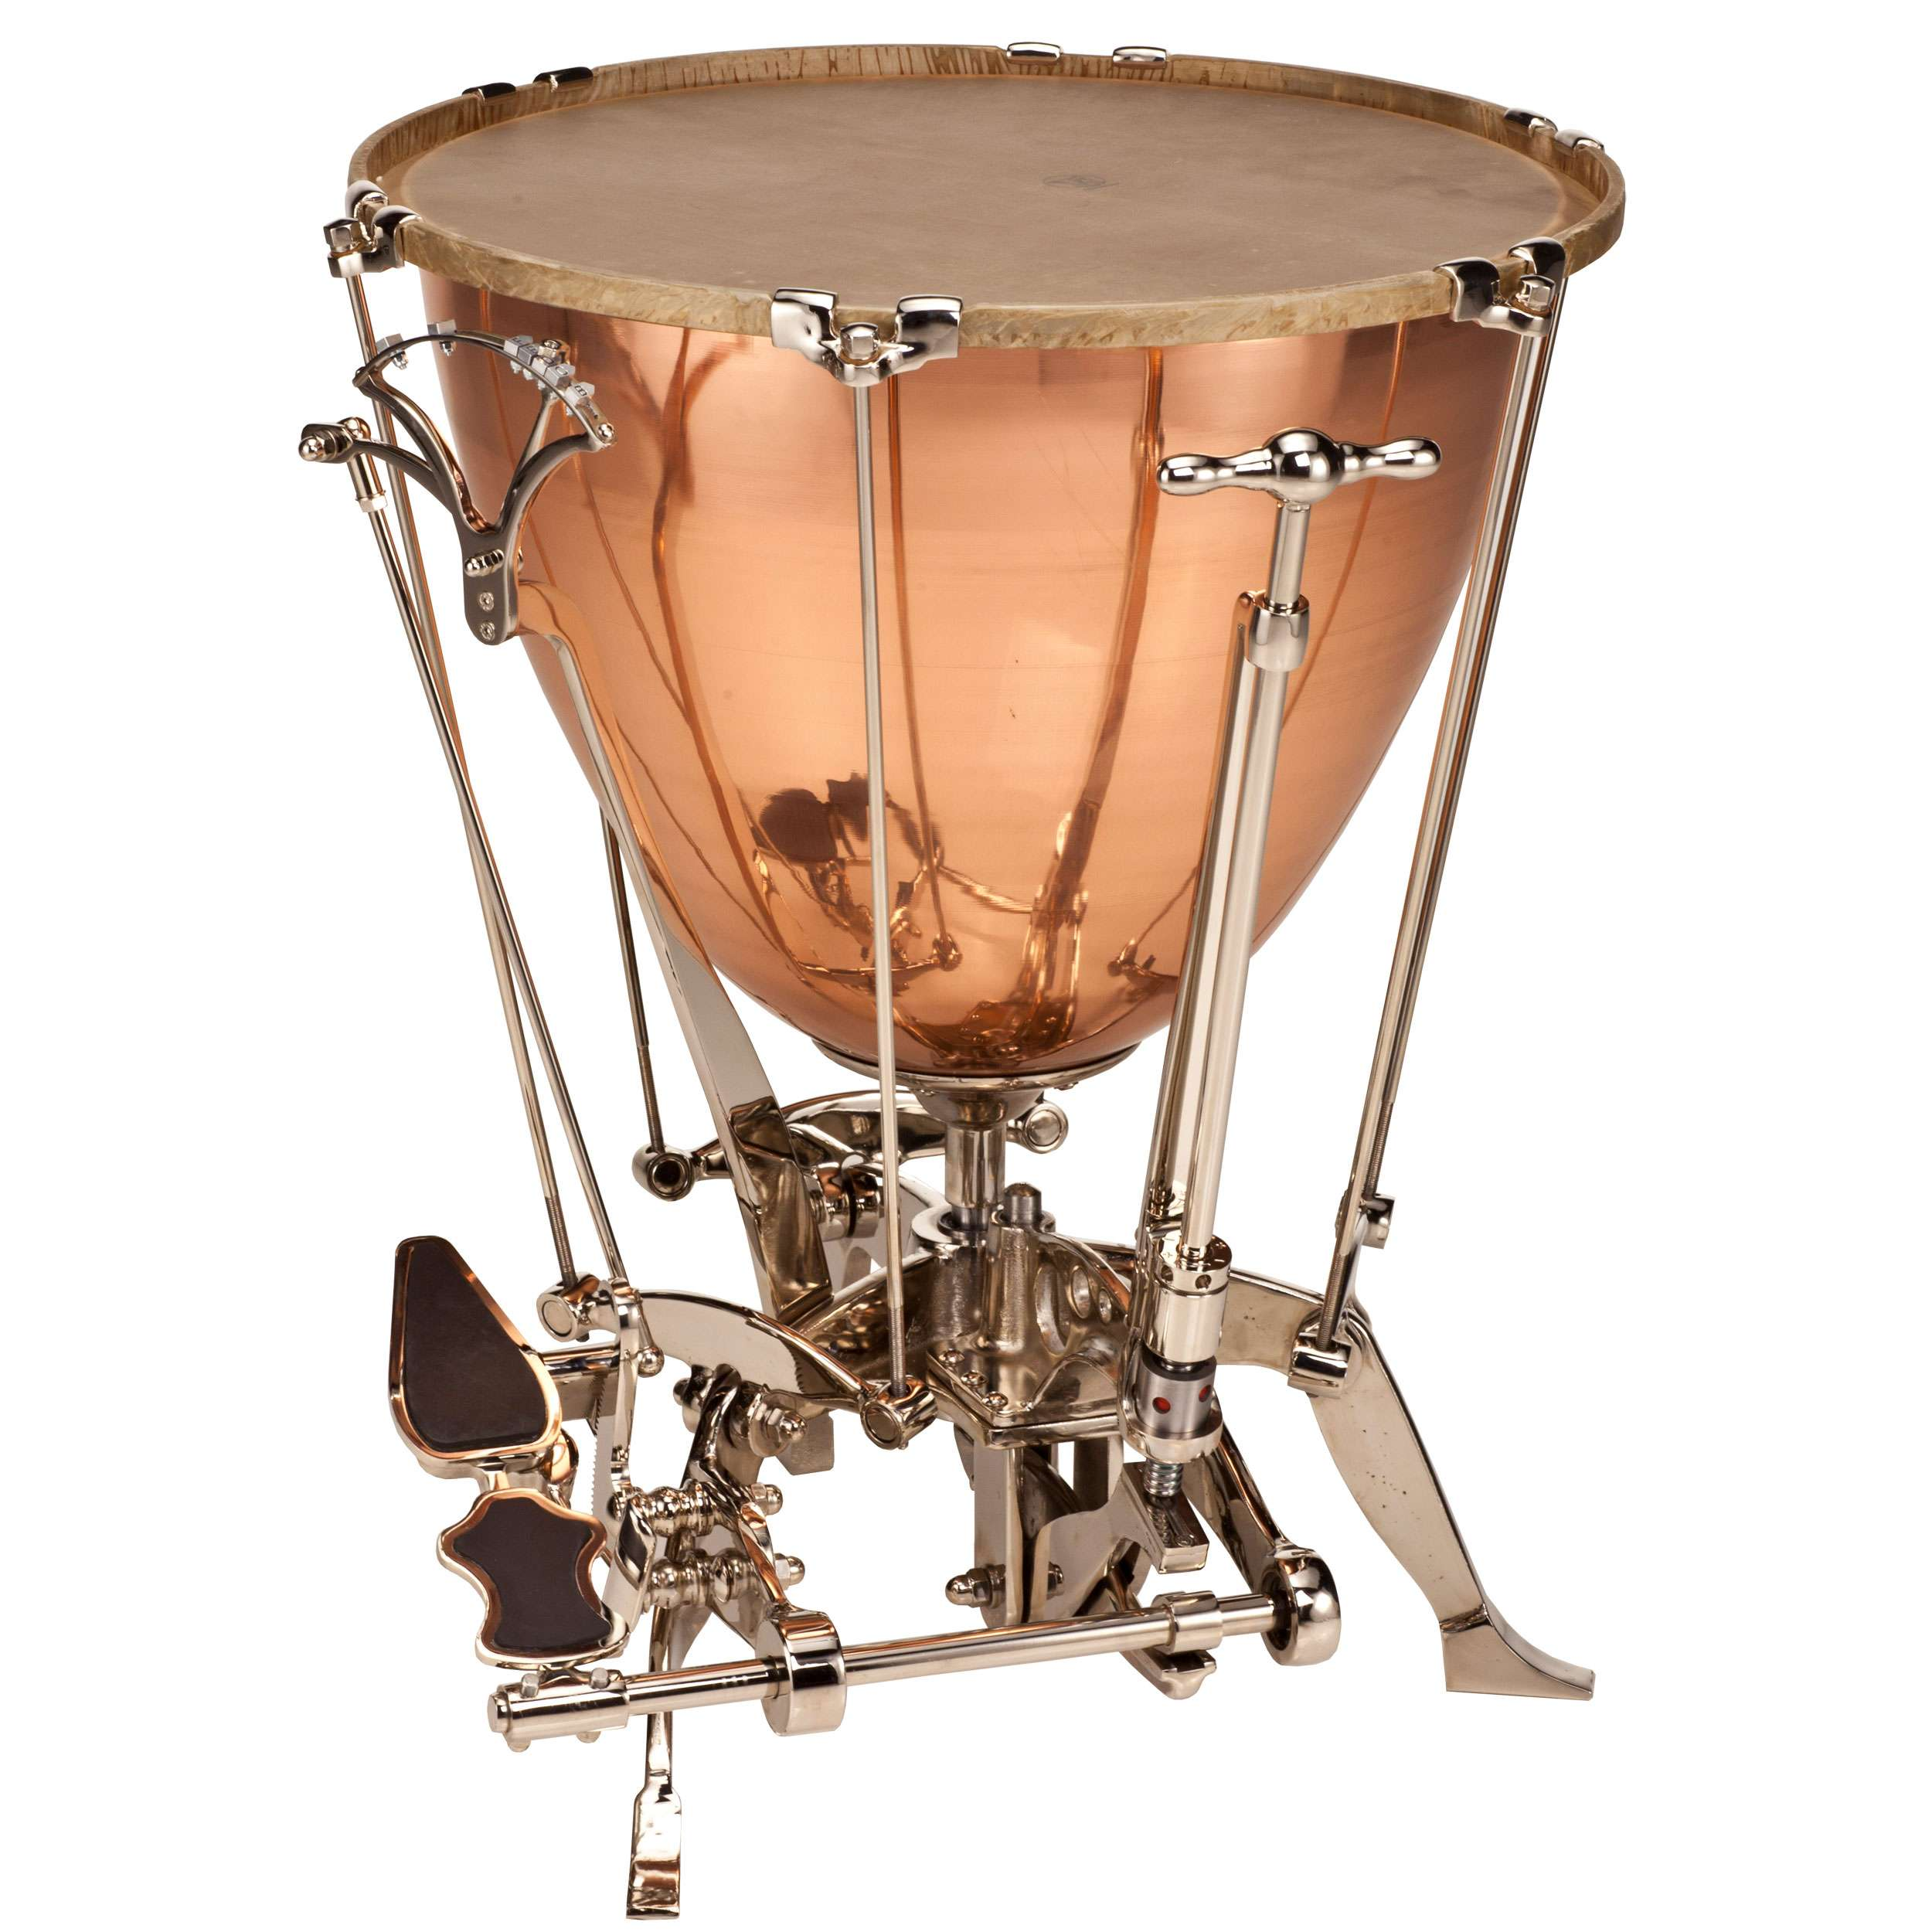 "Adams 28"" Schnellar Timpani with Kurbel (Crank) and Calfskin Head"